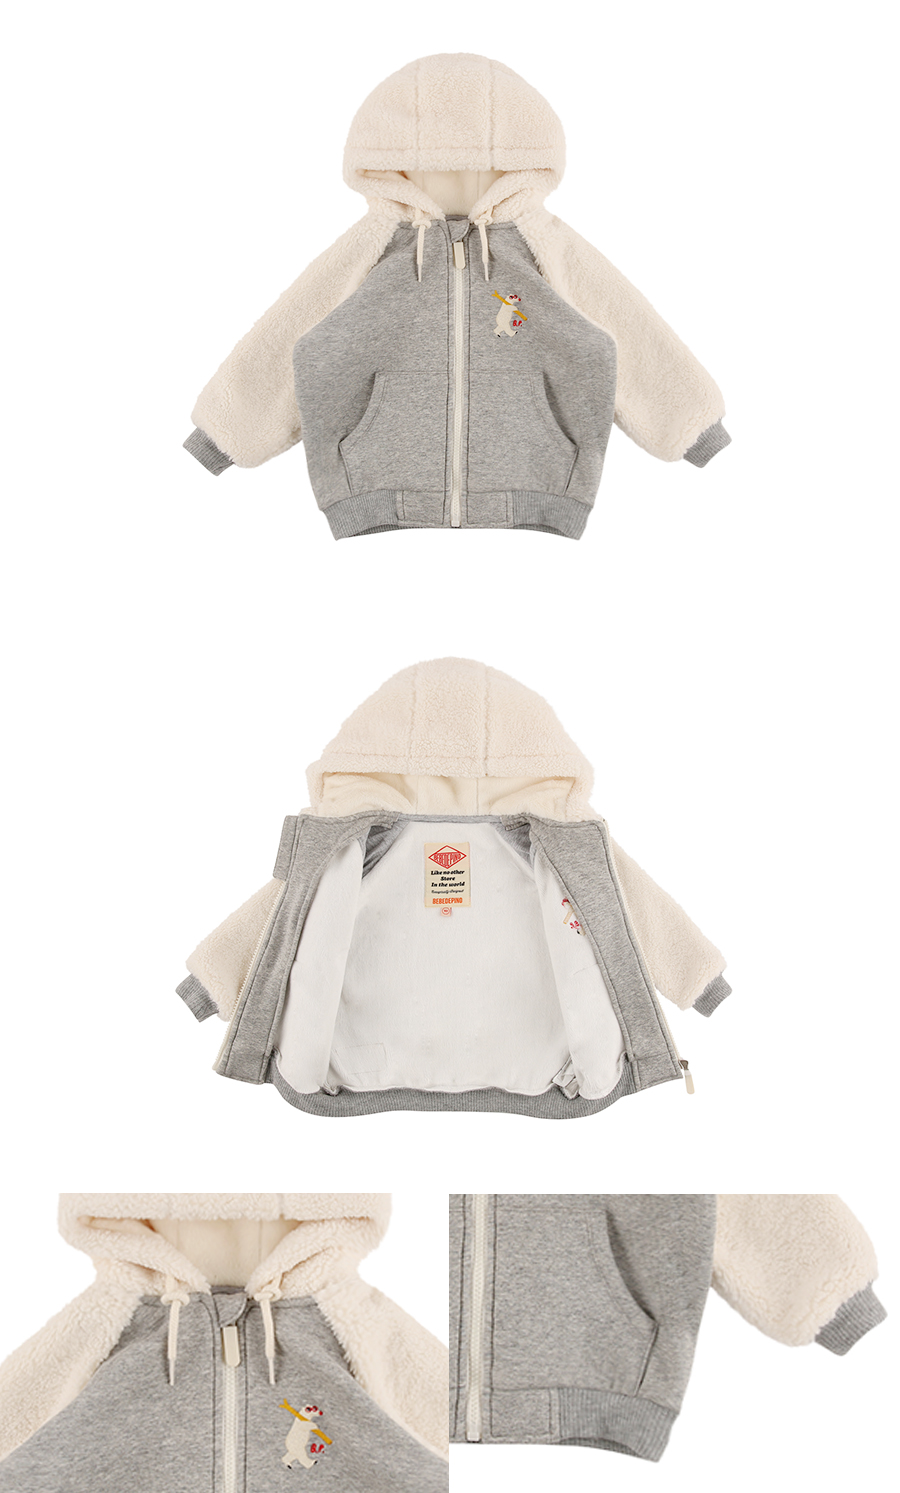 Polar bear baby dumble fur zip up jacket 상세 이미지